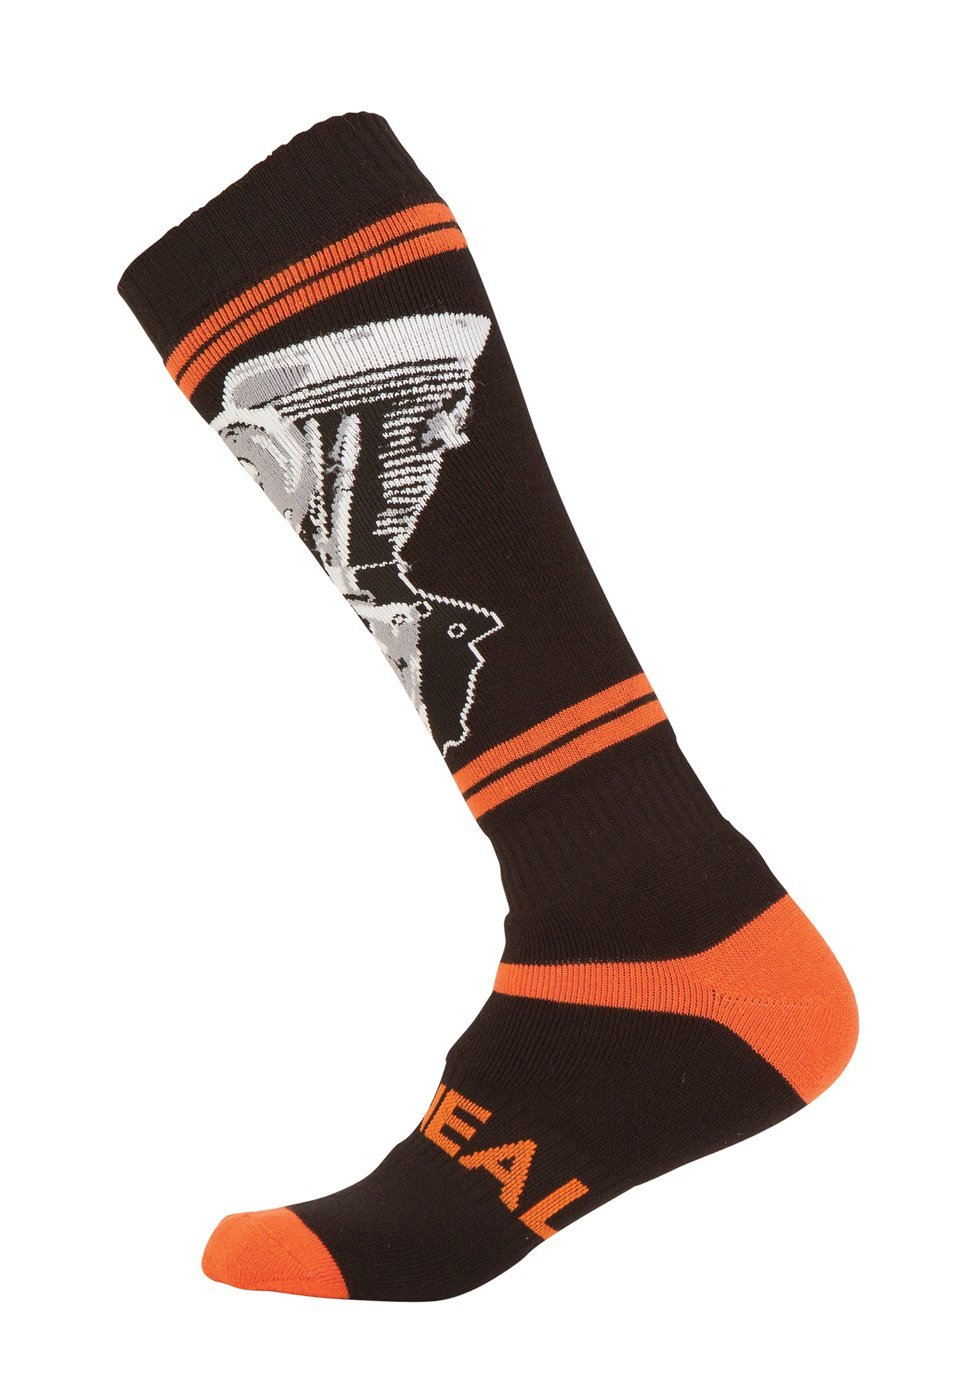 O'Neal 0356-720 Pro MX V-Twin Sox (Graphics, Adult One Size)